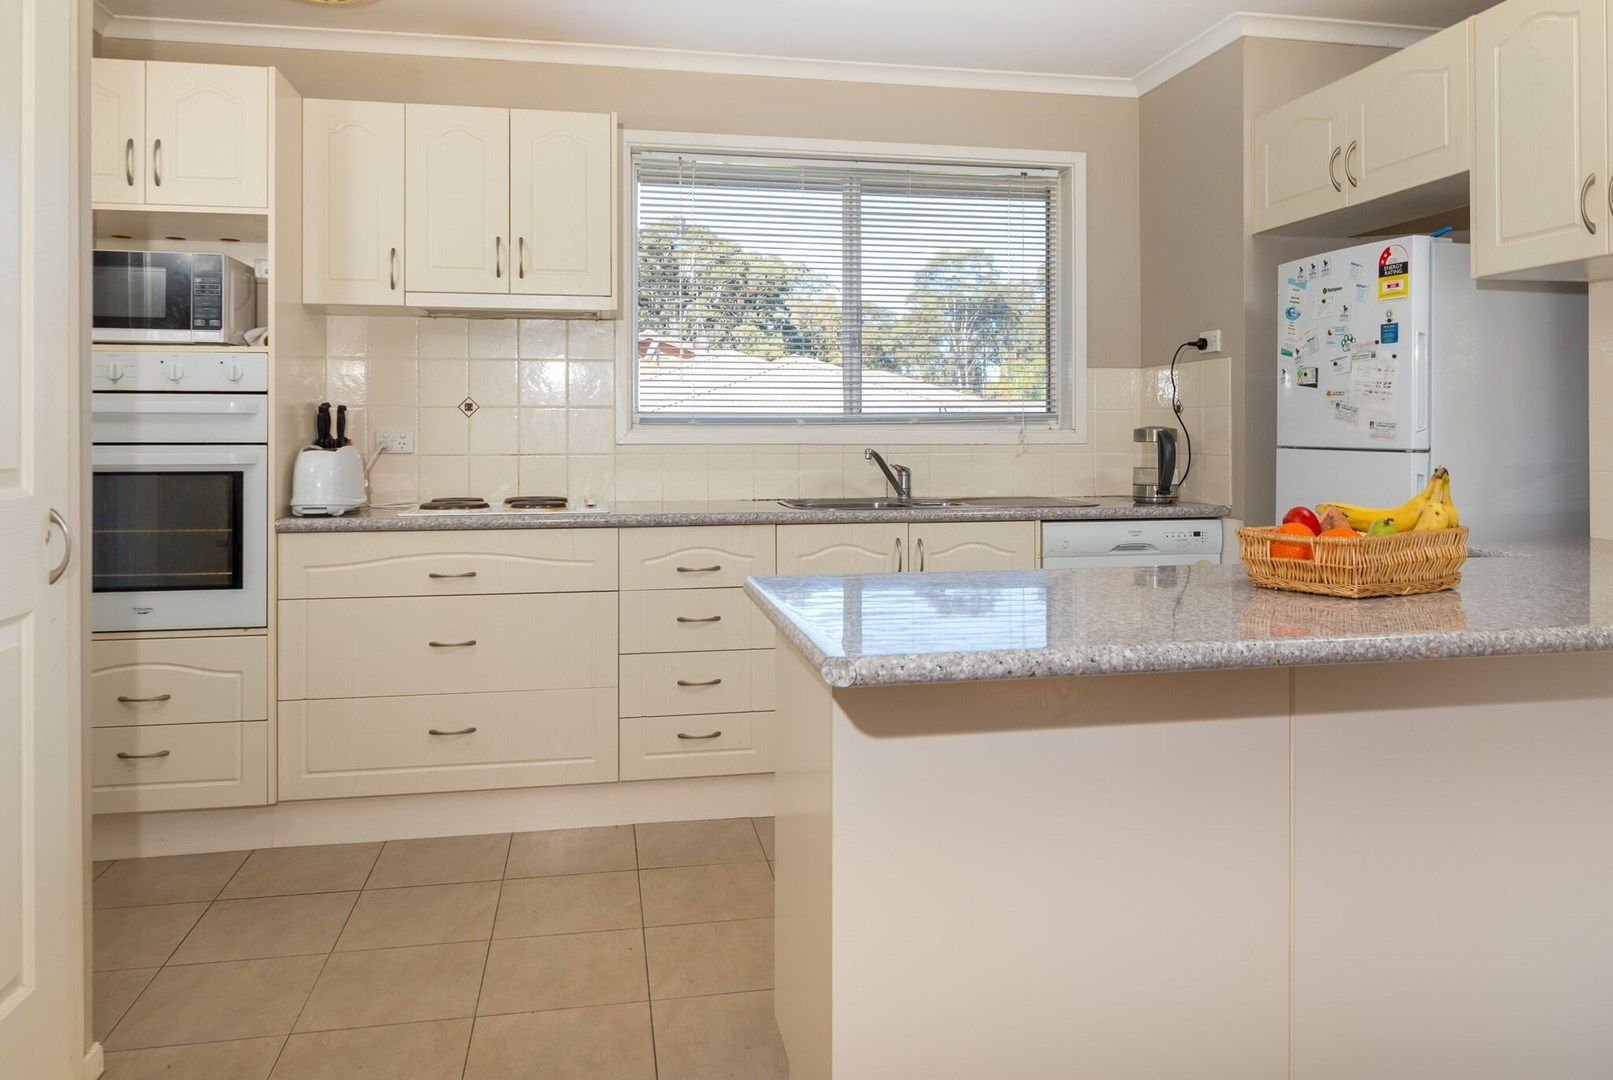 17 Cook Avenue, Surf Beach NSW 2536, Image 0